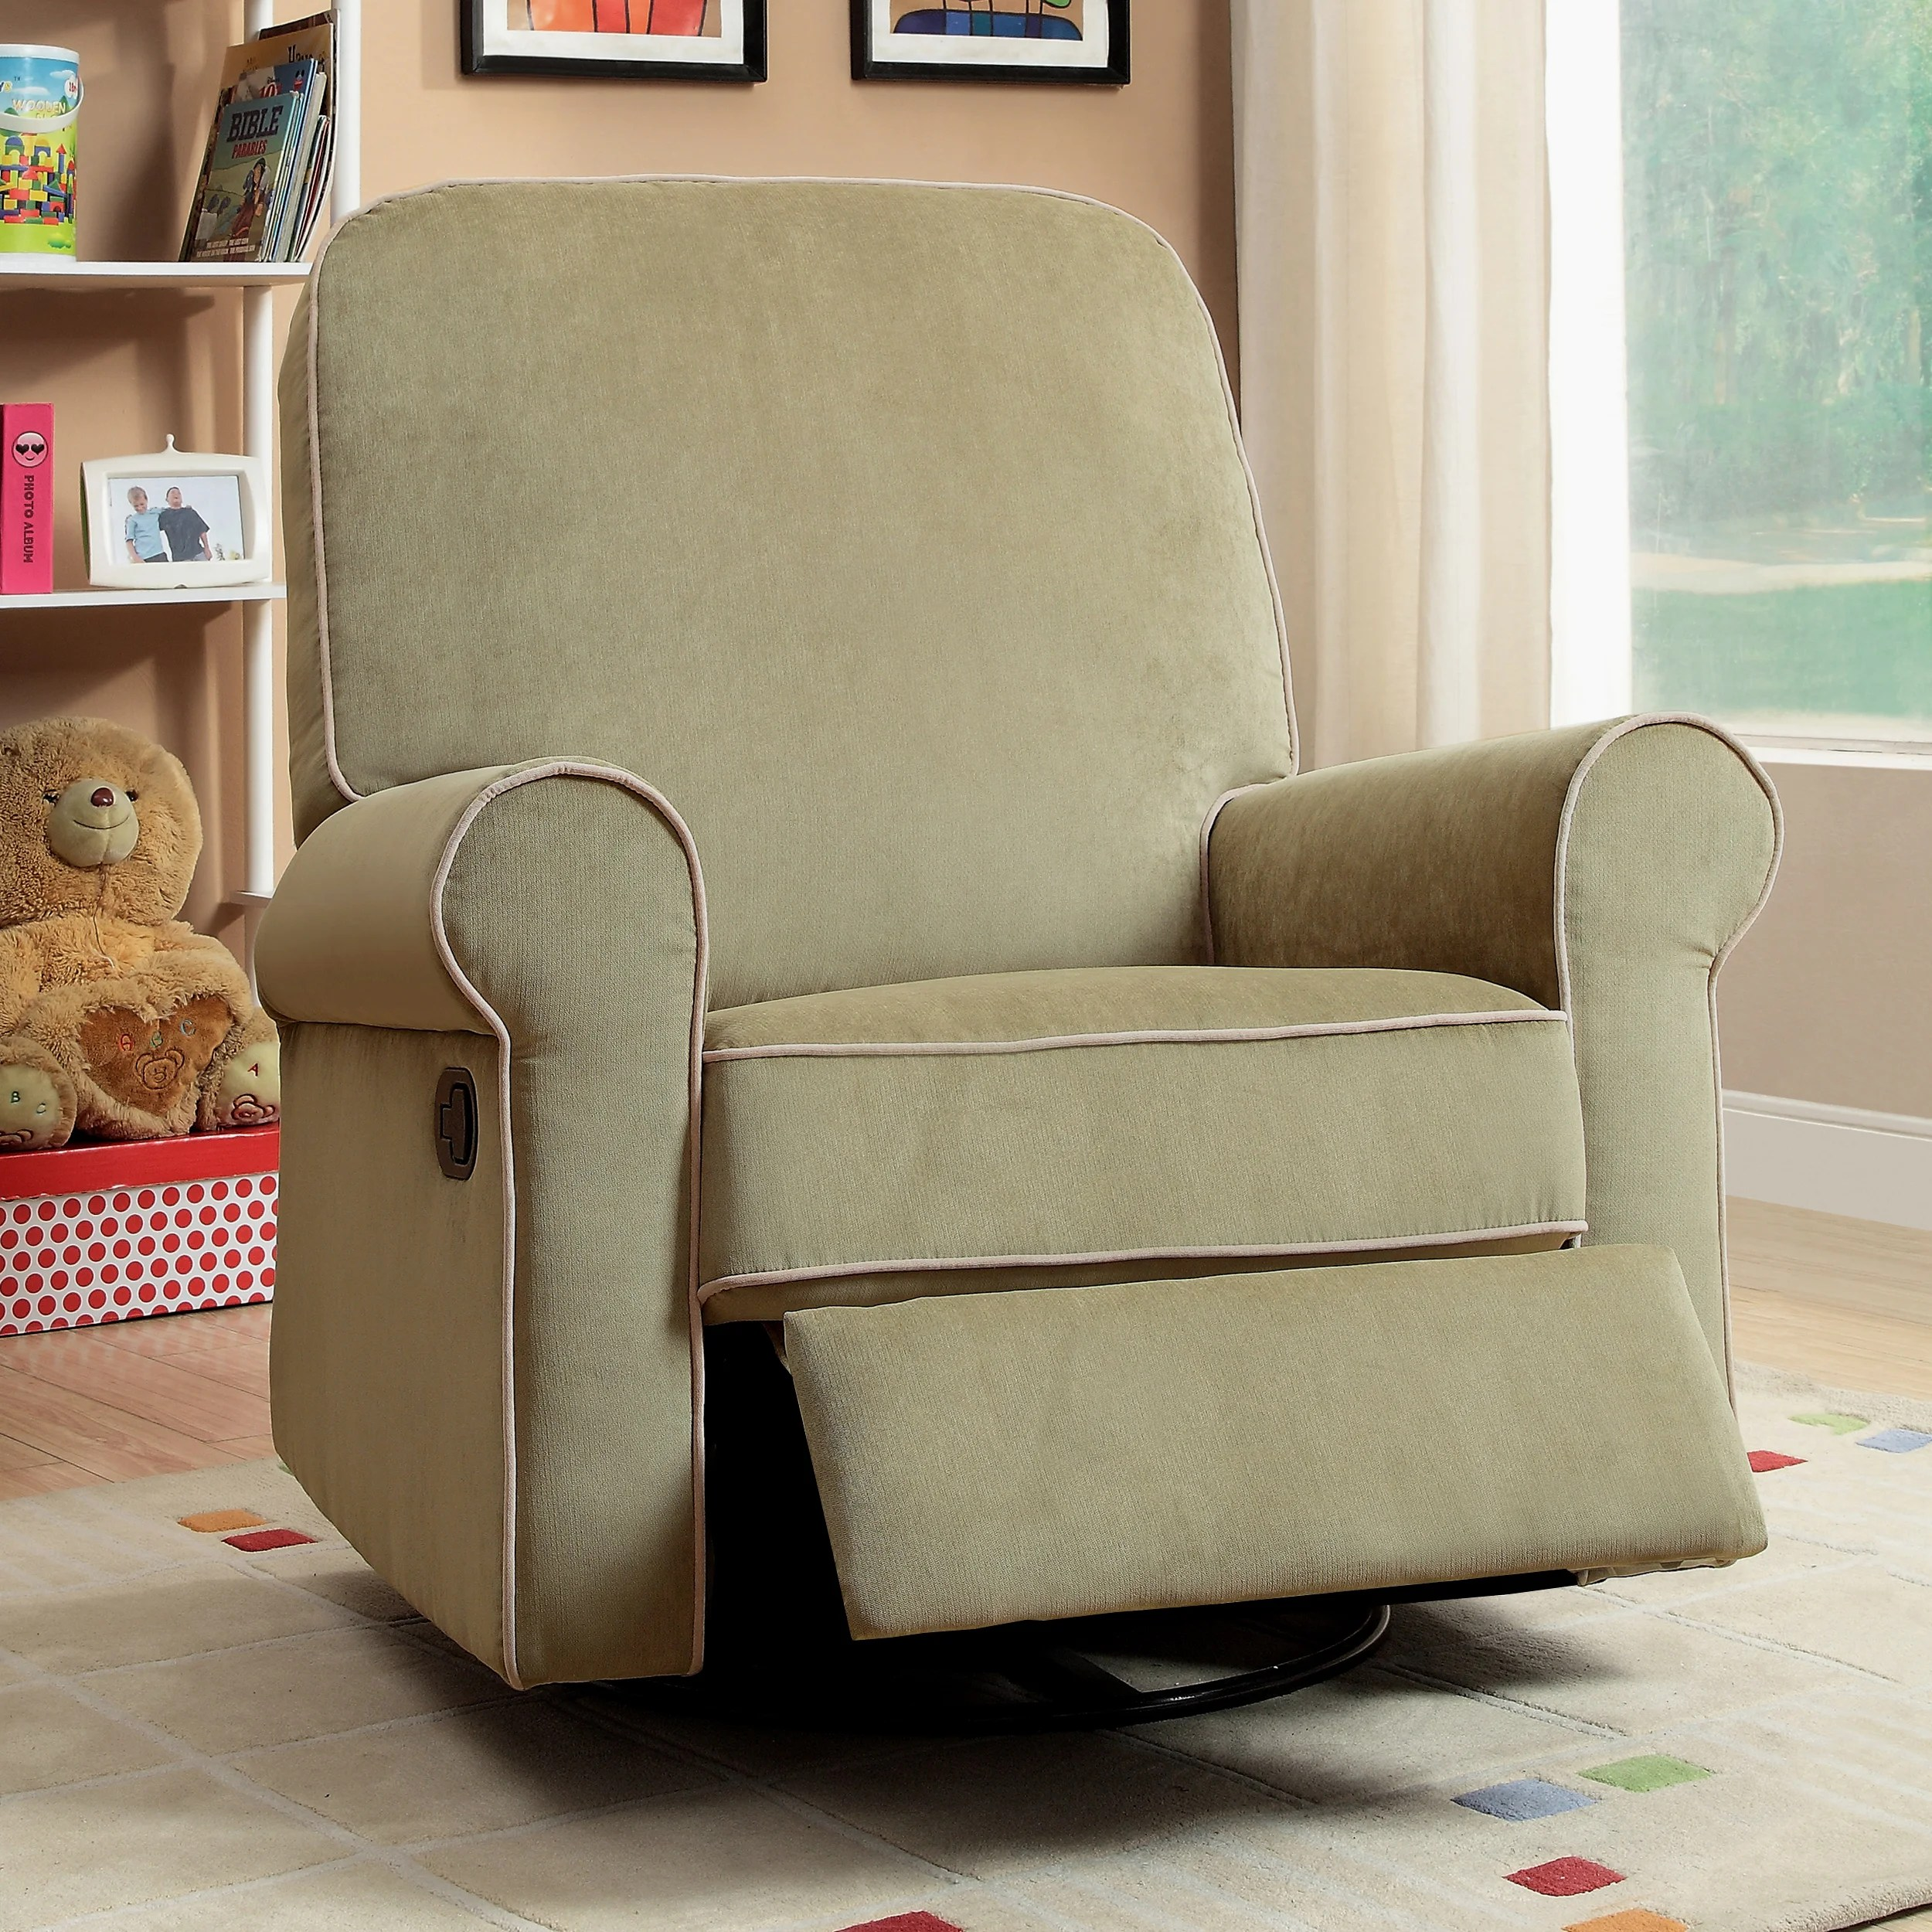 Overstock Rocking Chairs Madison Moss Green Fabric Nursery Swivel Glider Recliner